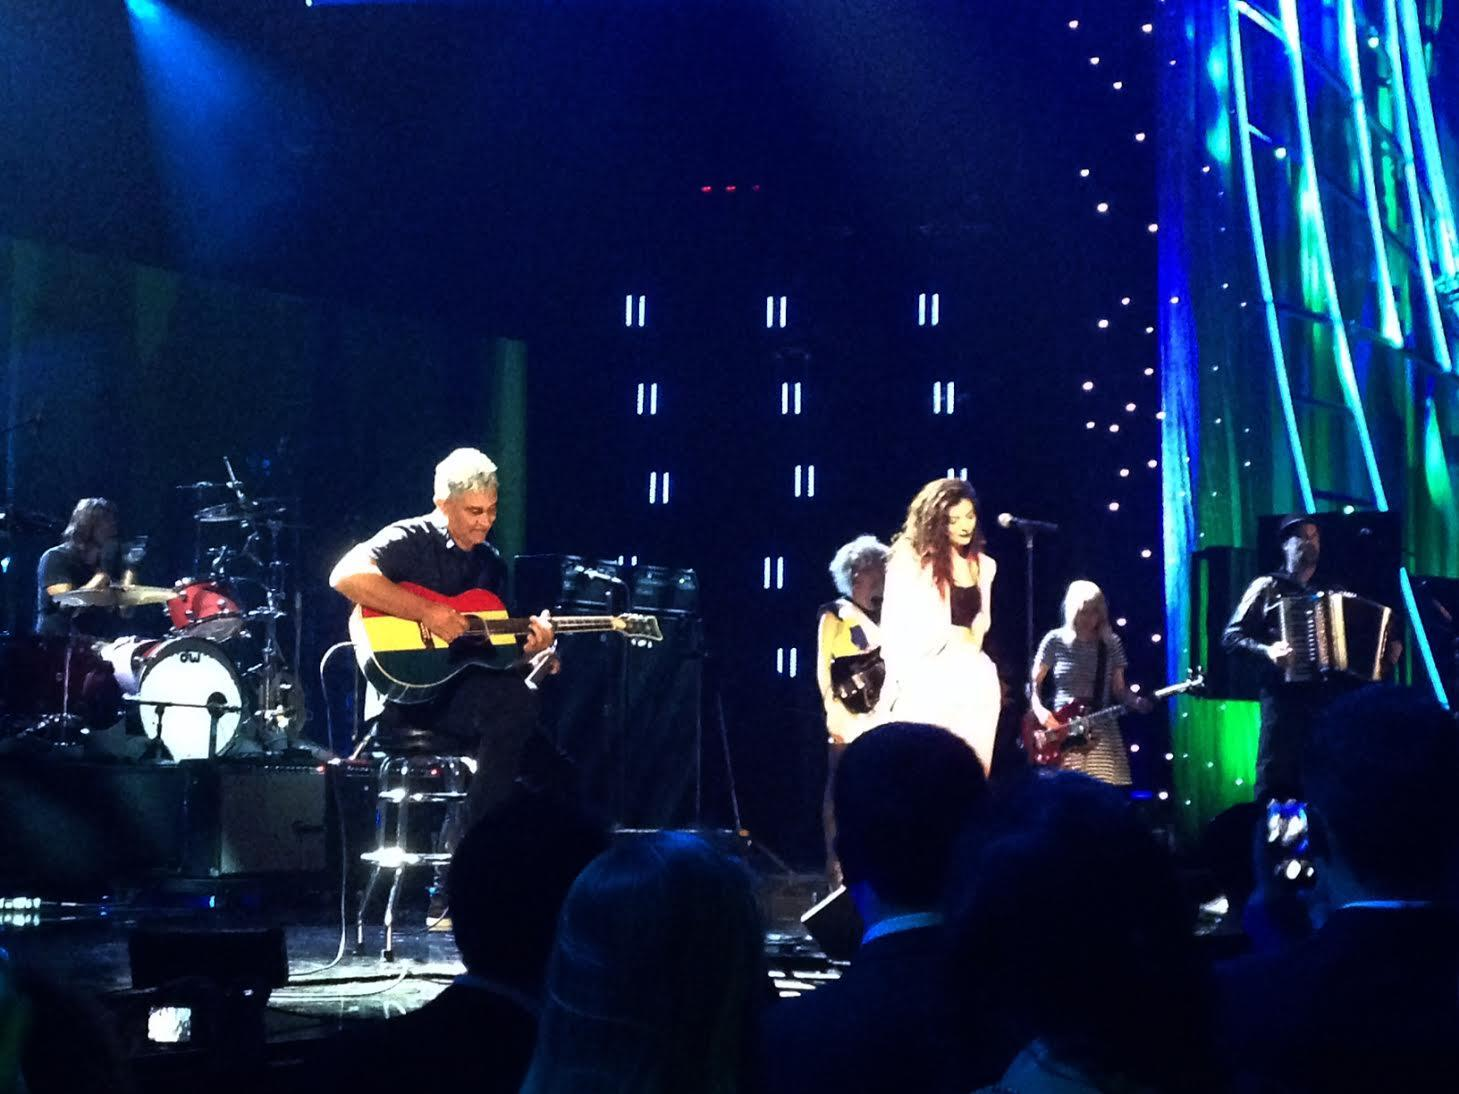 """Lorde joined Nirvana's Dave Grohl, Krist Novoselic and Pat Smear to perform """"All Apologies"""" at #RockHall2014 http://t.co/L97xgEuXRM"""